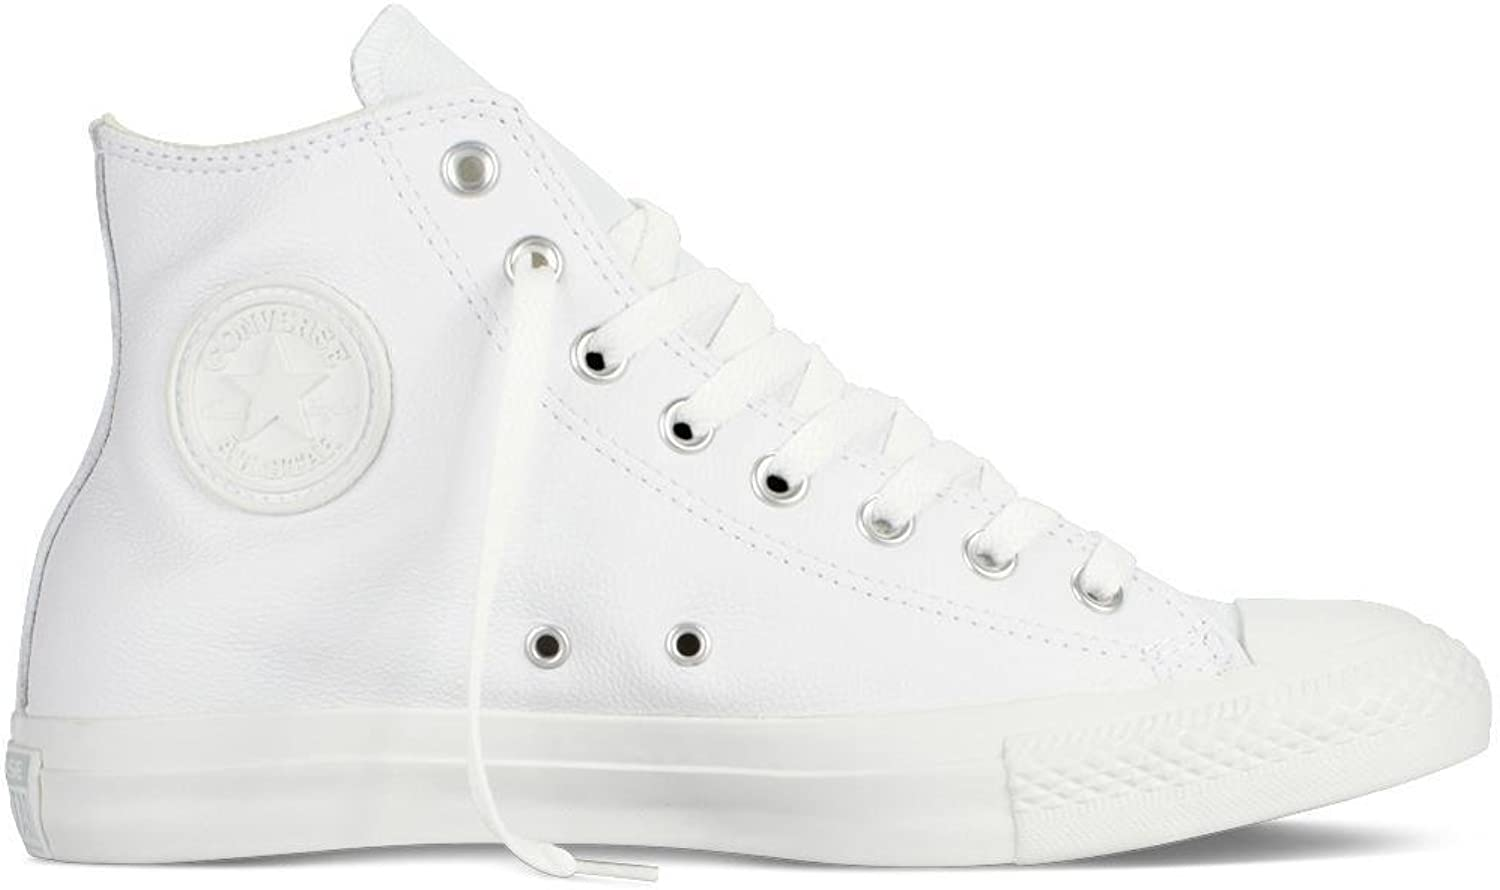 Converse Unisex Adults' Chuck Taylor Ct a S Lthr Hi Low-Top Sneakers